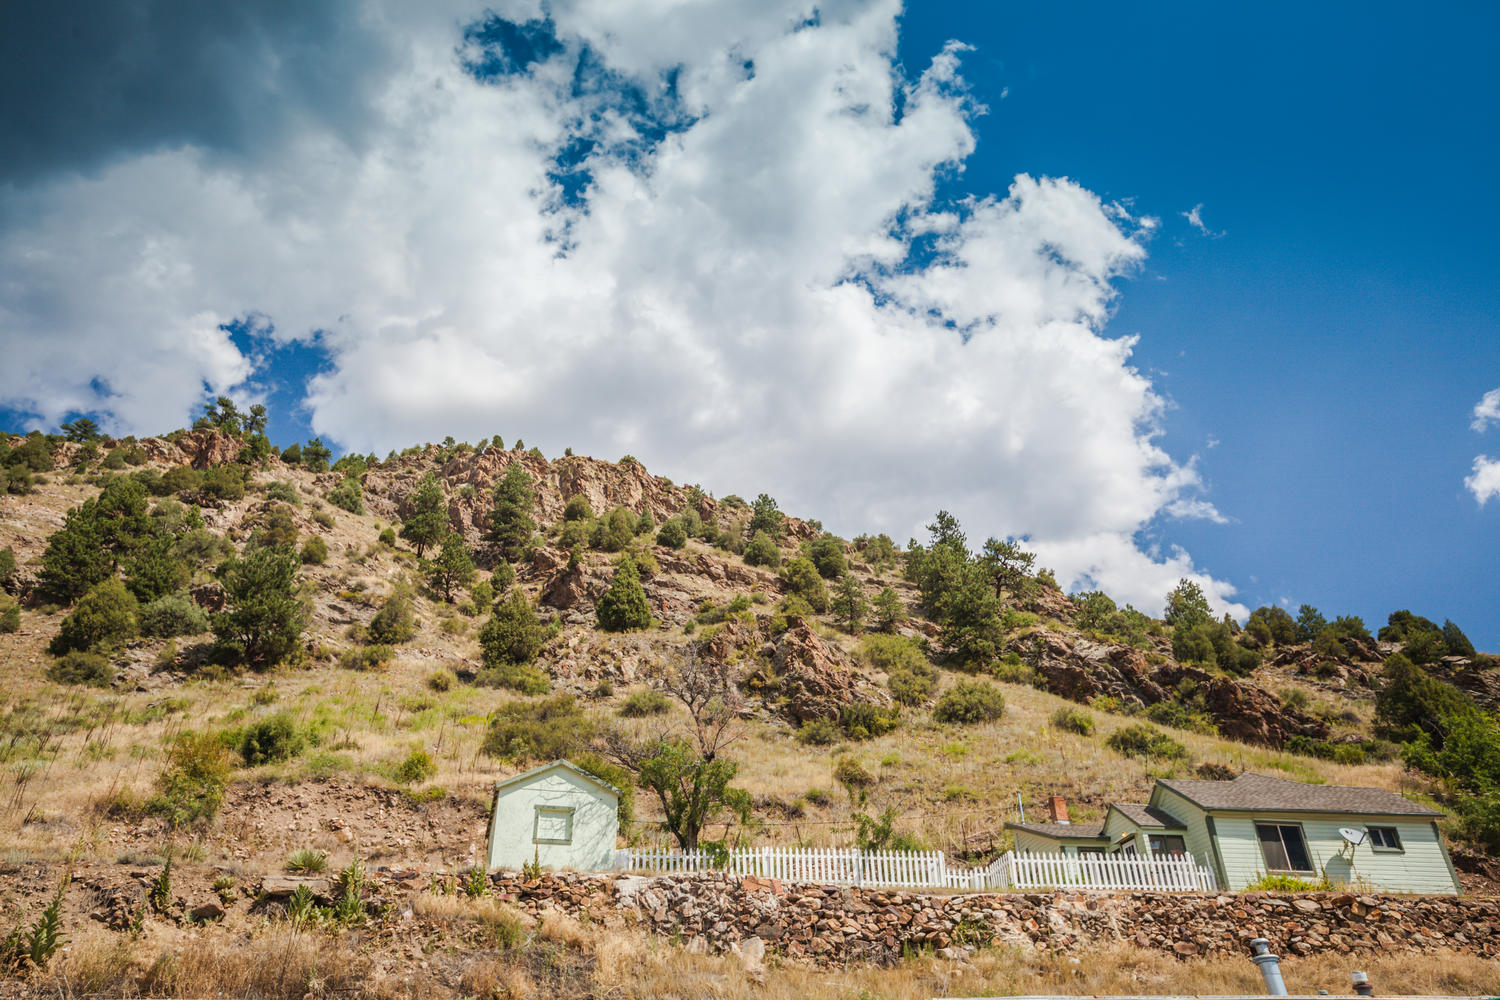 Single Family Home for Active at Own 2 homes, a building lot and 2 mines!! 1616 Wall Street Idaho Springs, Colorado 80452 United States